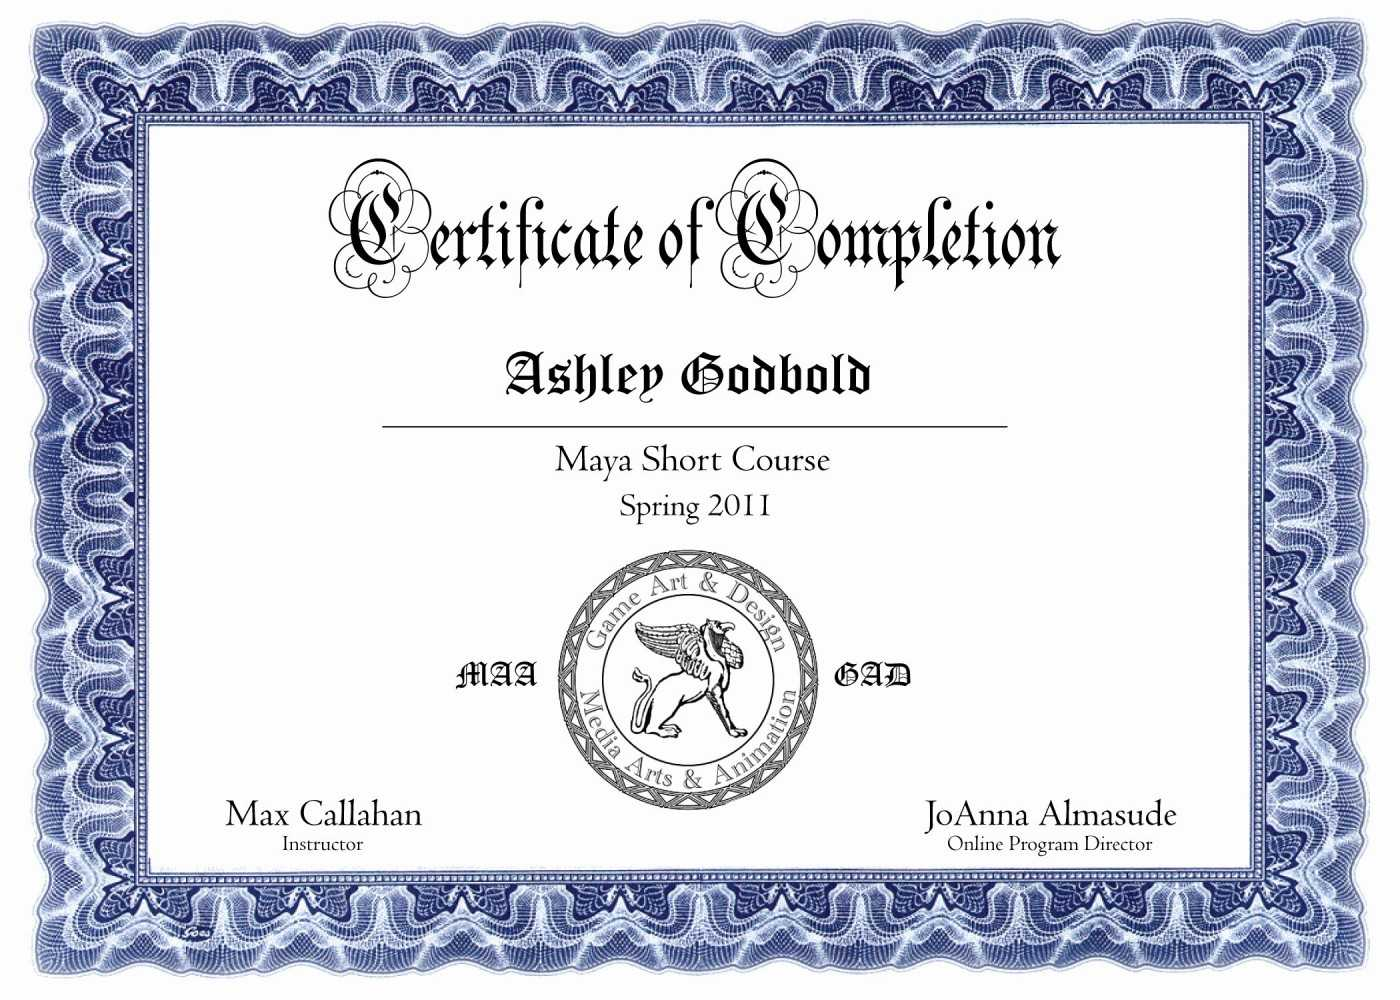 004 Certificate Of Completion Template Free Ideas Editable in Premarital Counseling Certificate Of Completion Template